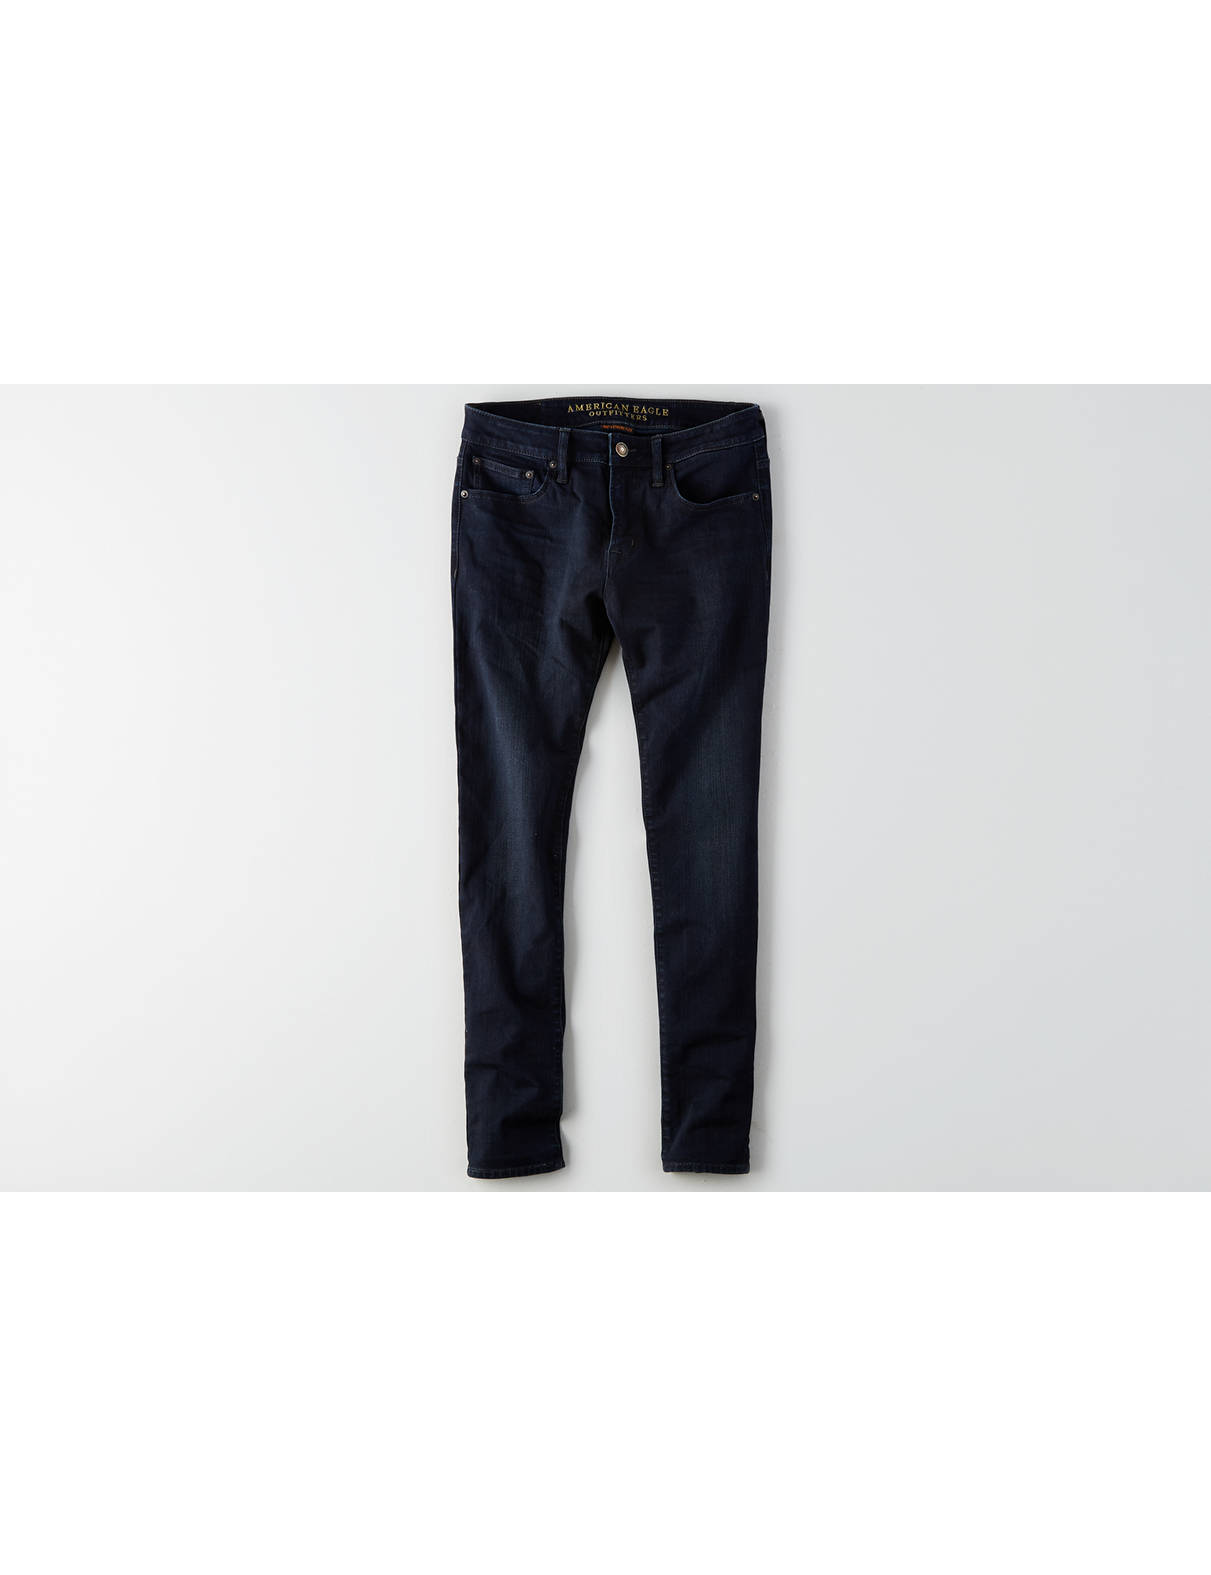 Men's Jeans | American Eagle Outfitters